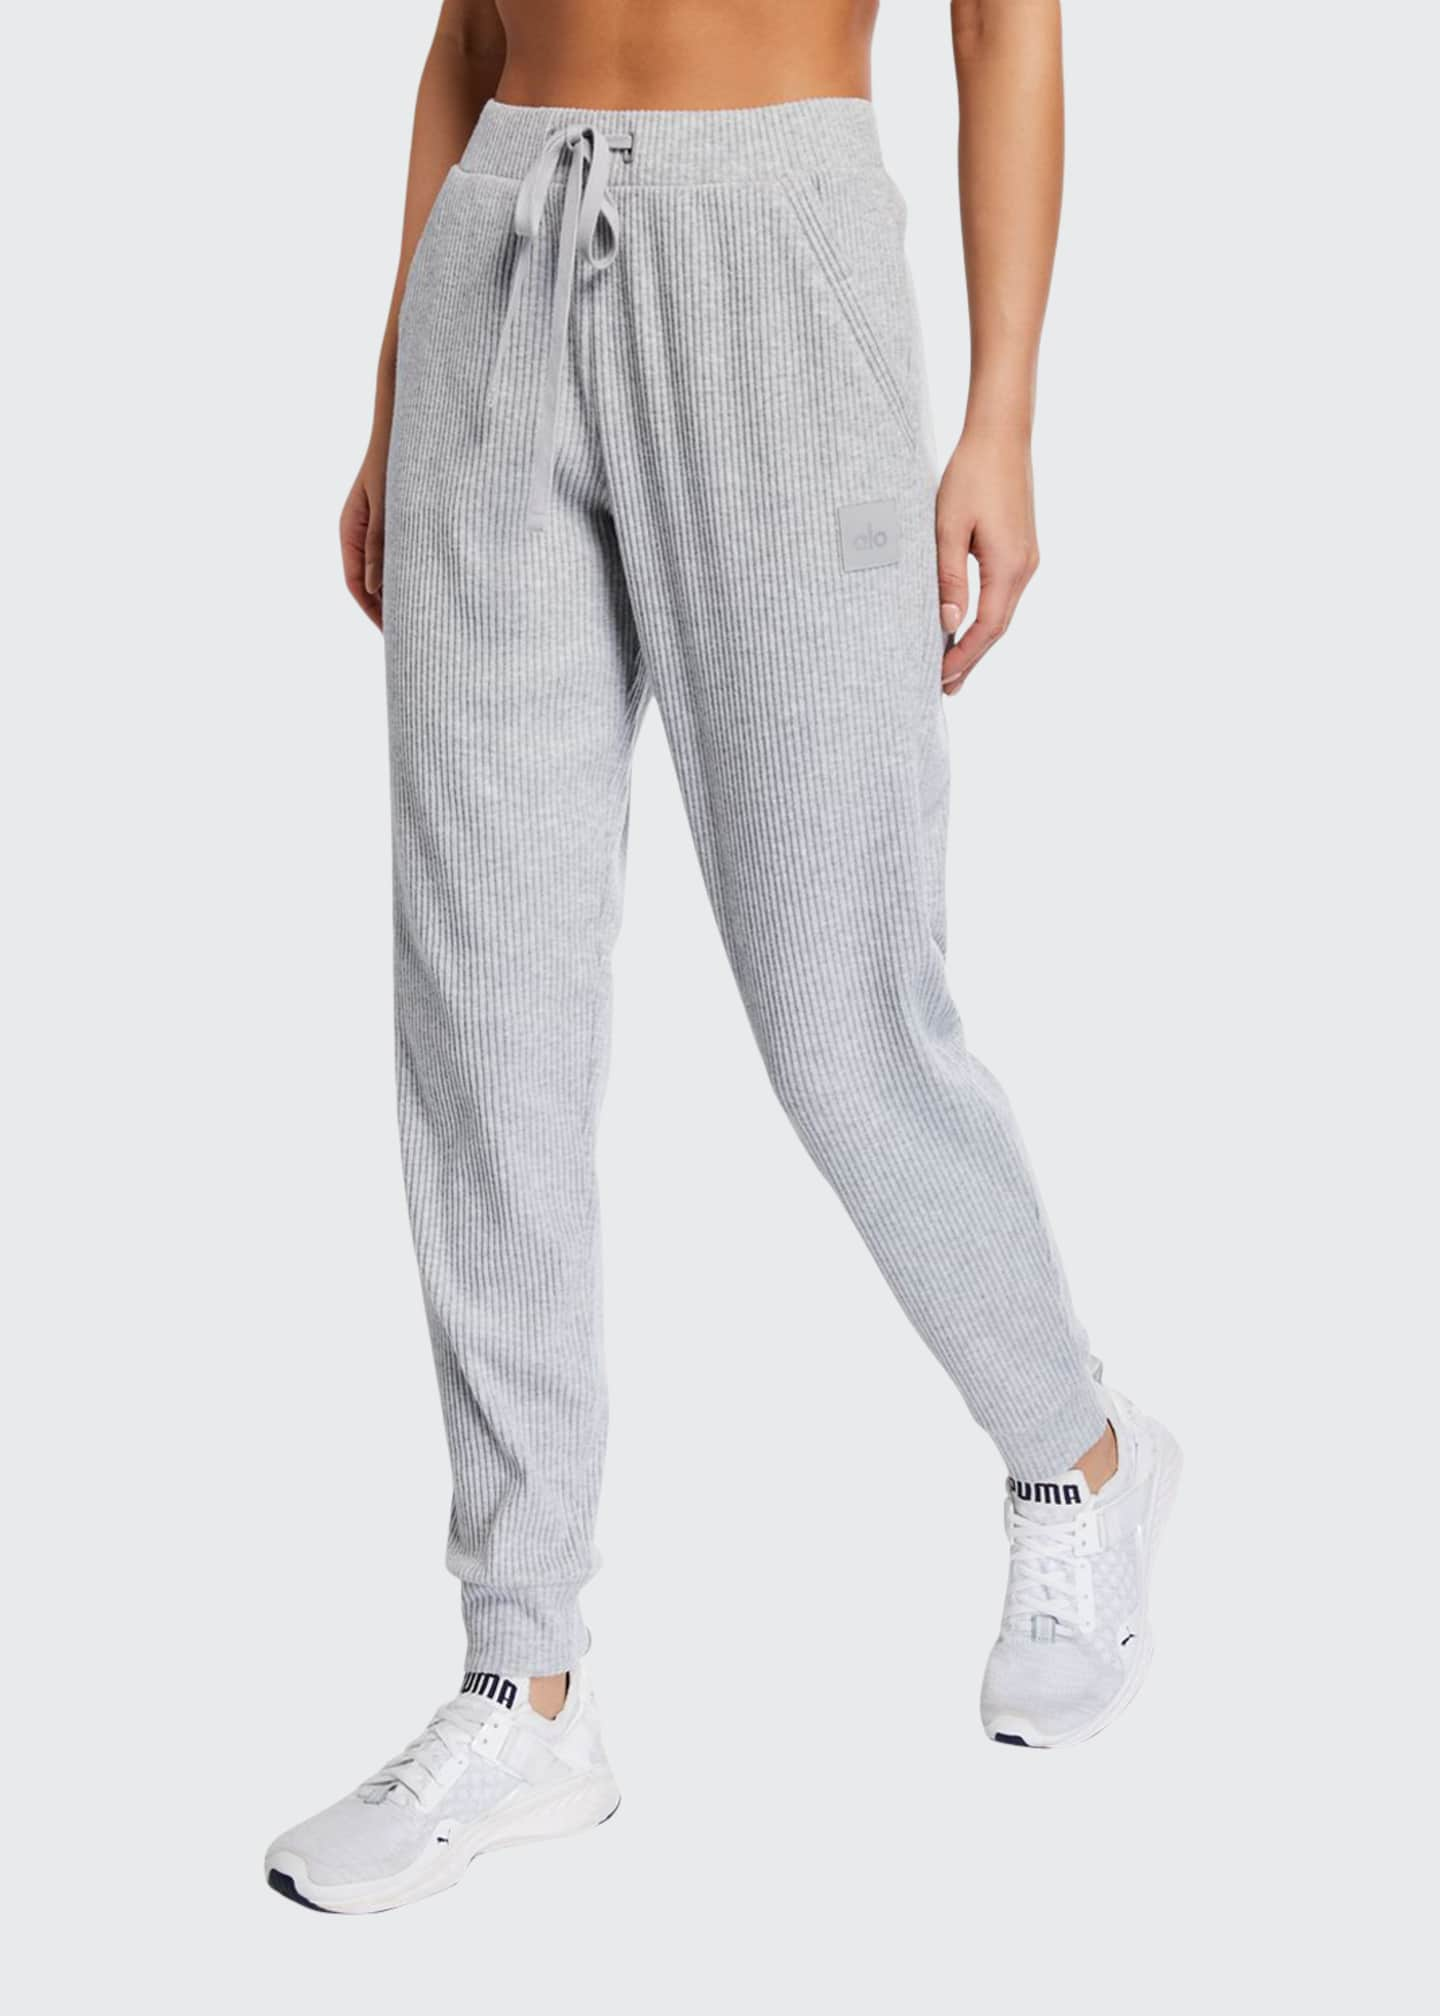 Alo Yoga Muse Sweatpants